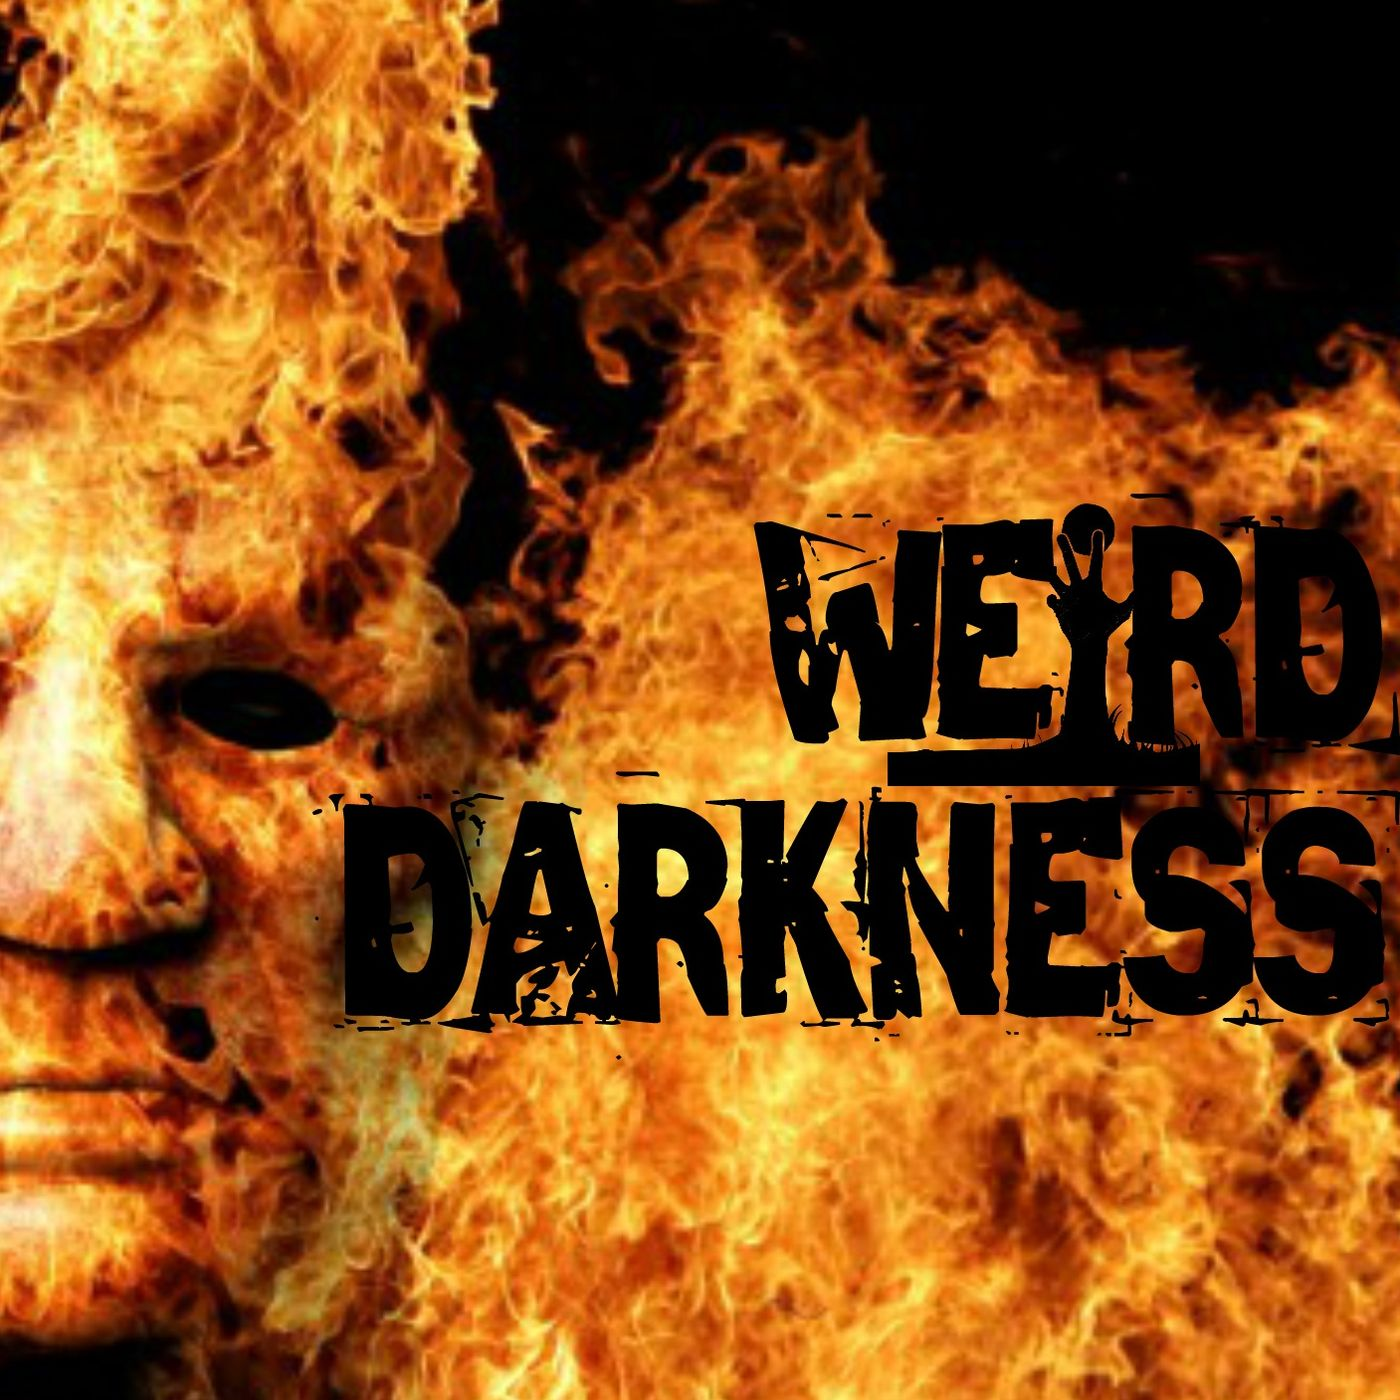 """THE POLTERGEIST THAT STARTED FIRES"" and 7 More Scary True Paranormal Stories! #WeirdDarkness"